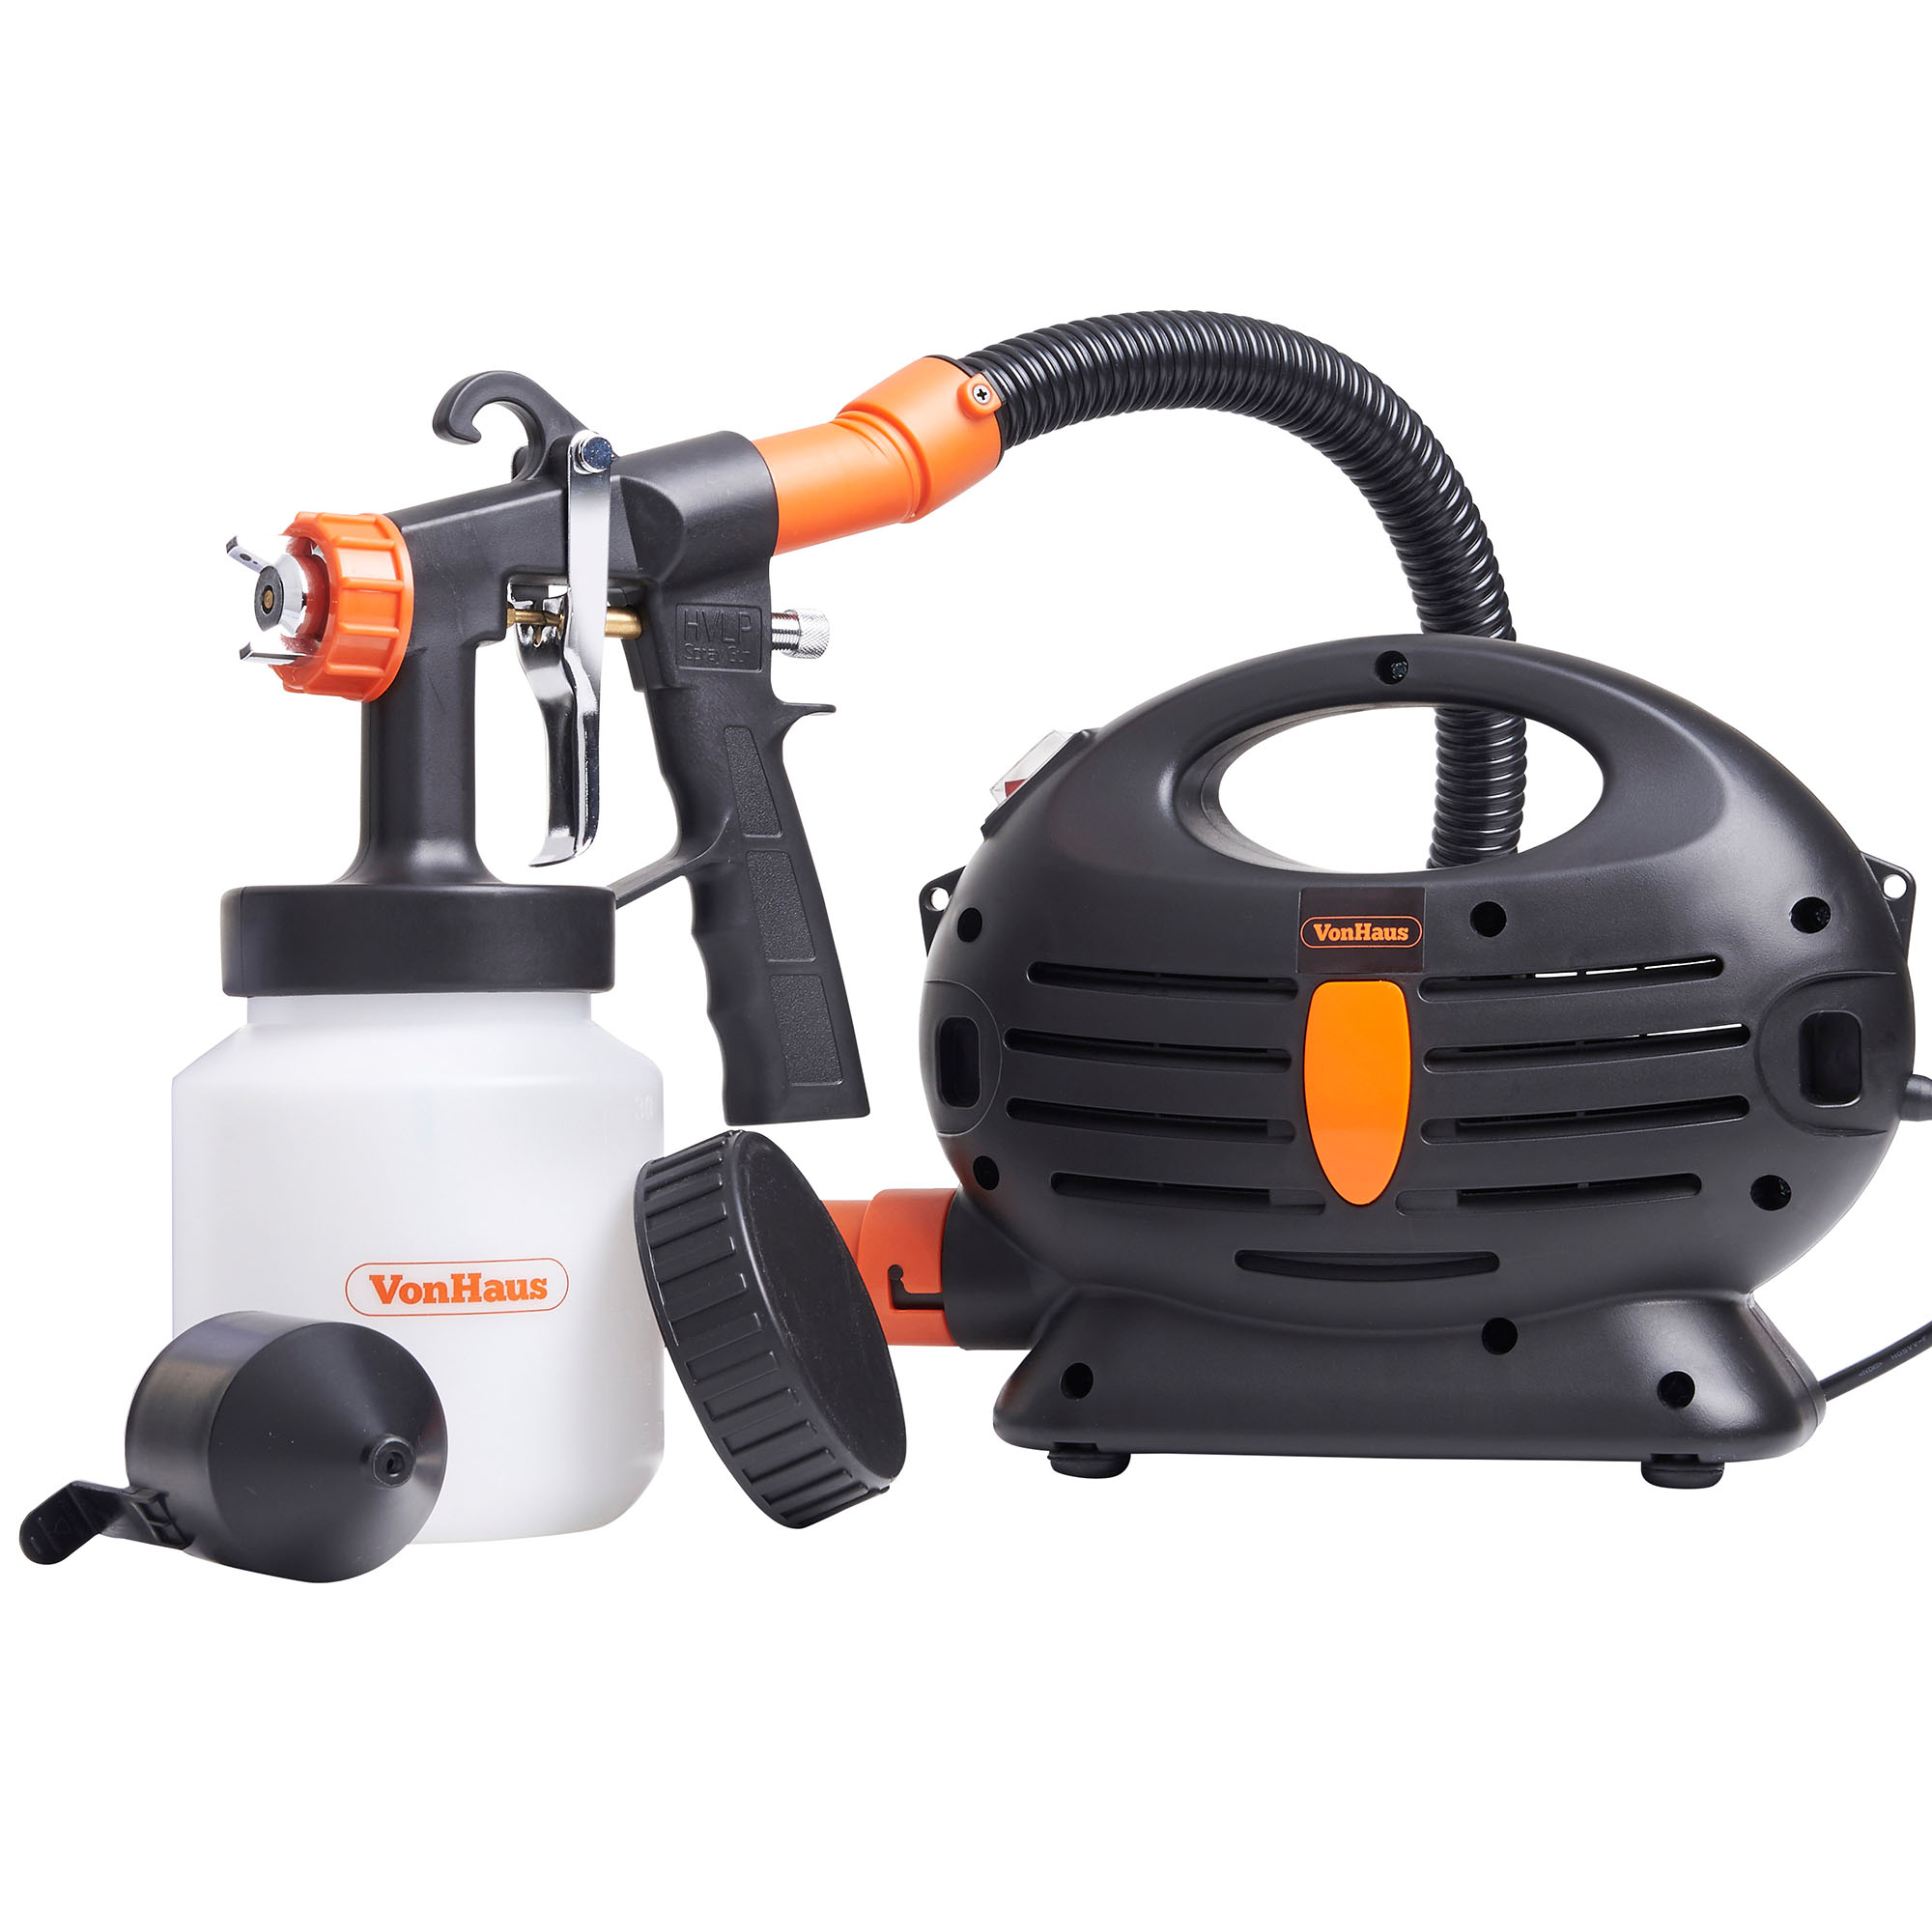 Vonhaus 850w Paint Sprayer Indoor Varnish Lacquer Fence Garden Stain Ebay